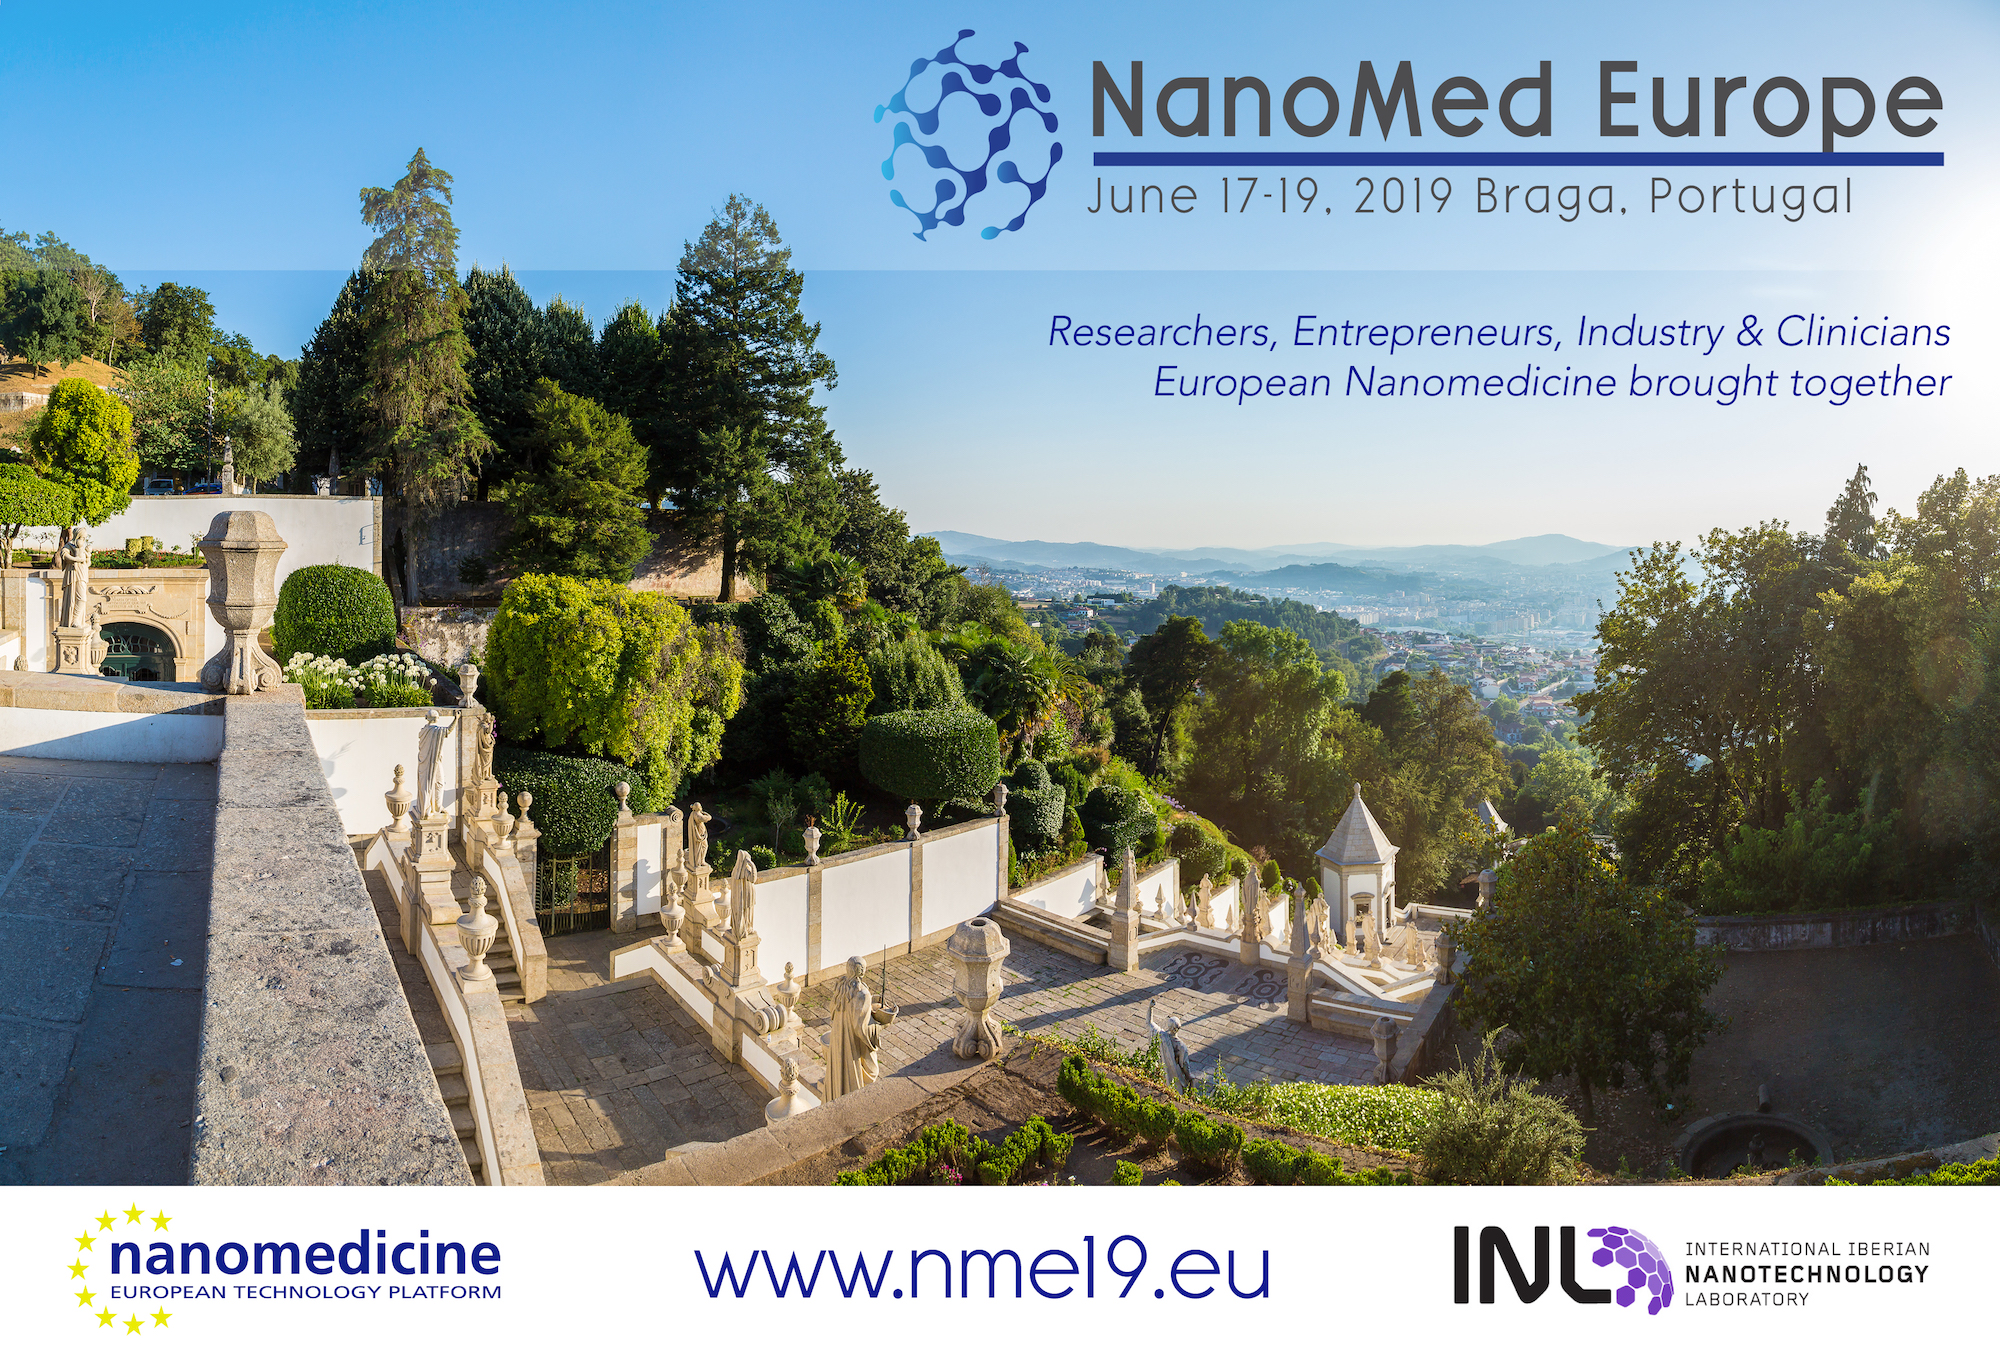 Nanomed Europe 2019 – NME19 – June 17-19 – Braga, Portugal | ETPN